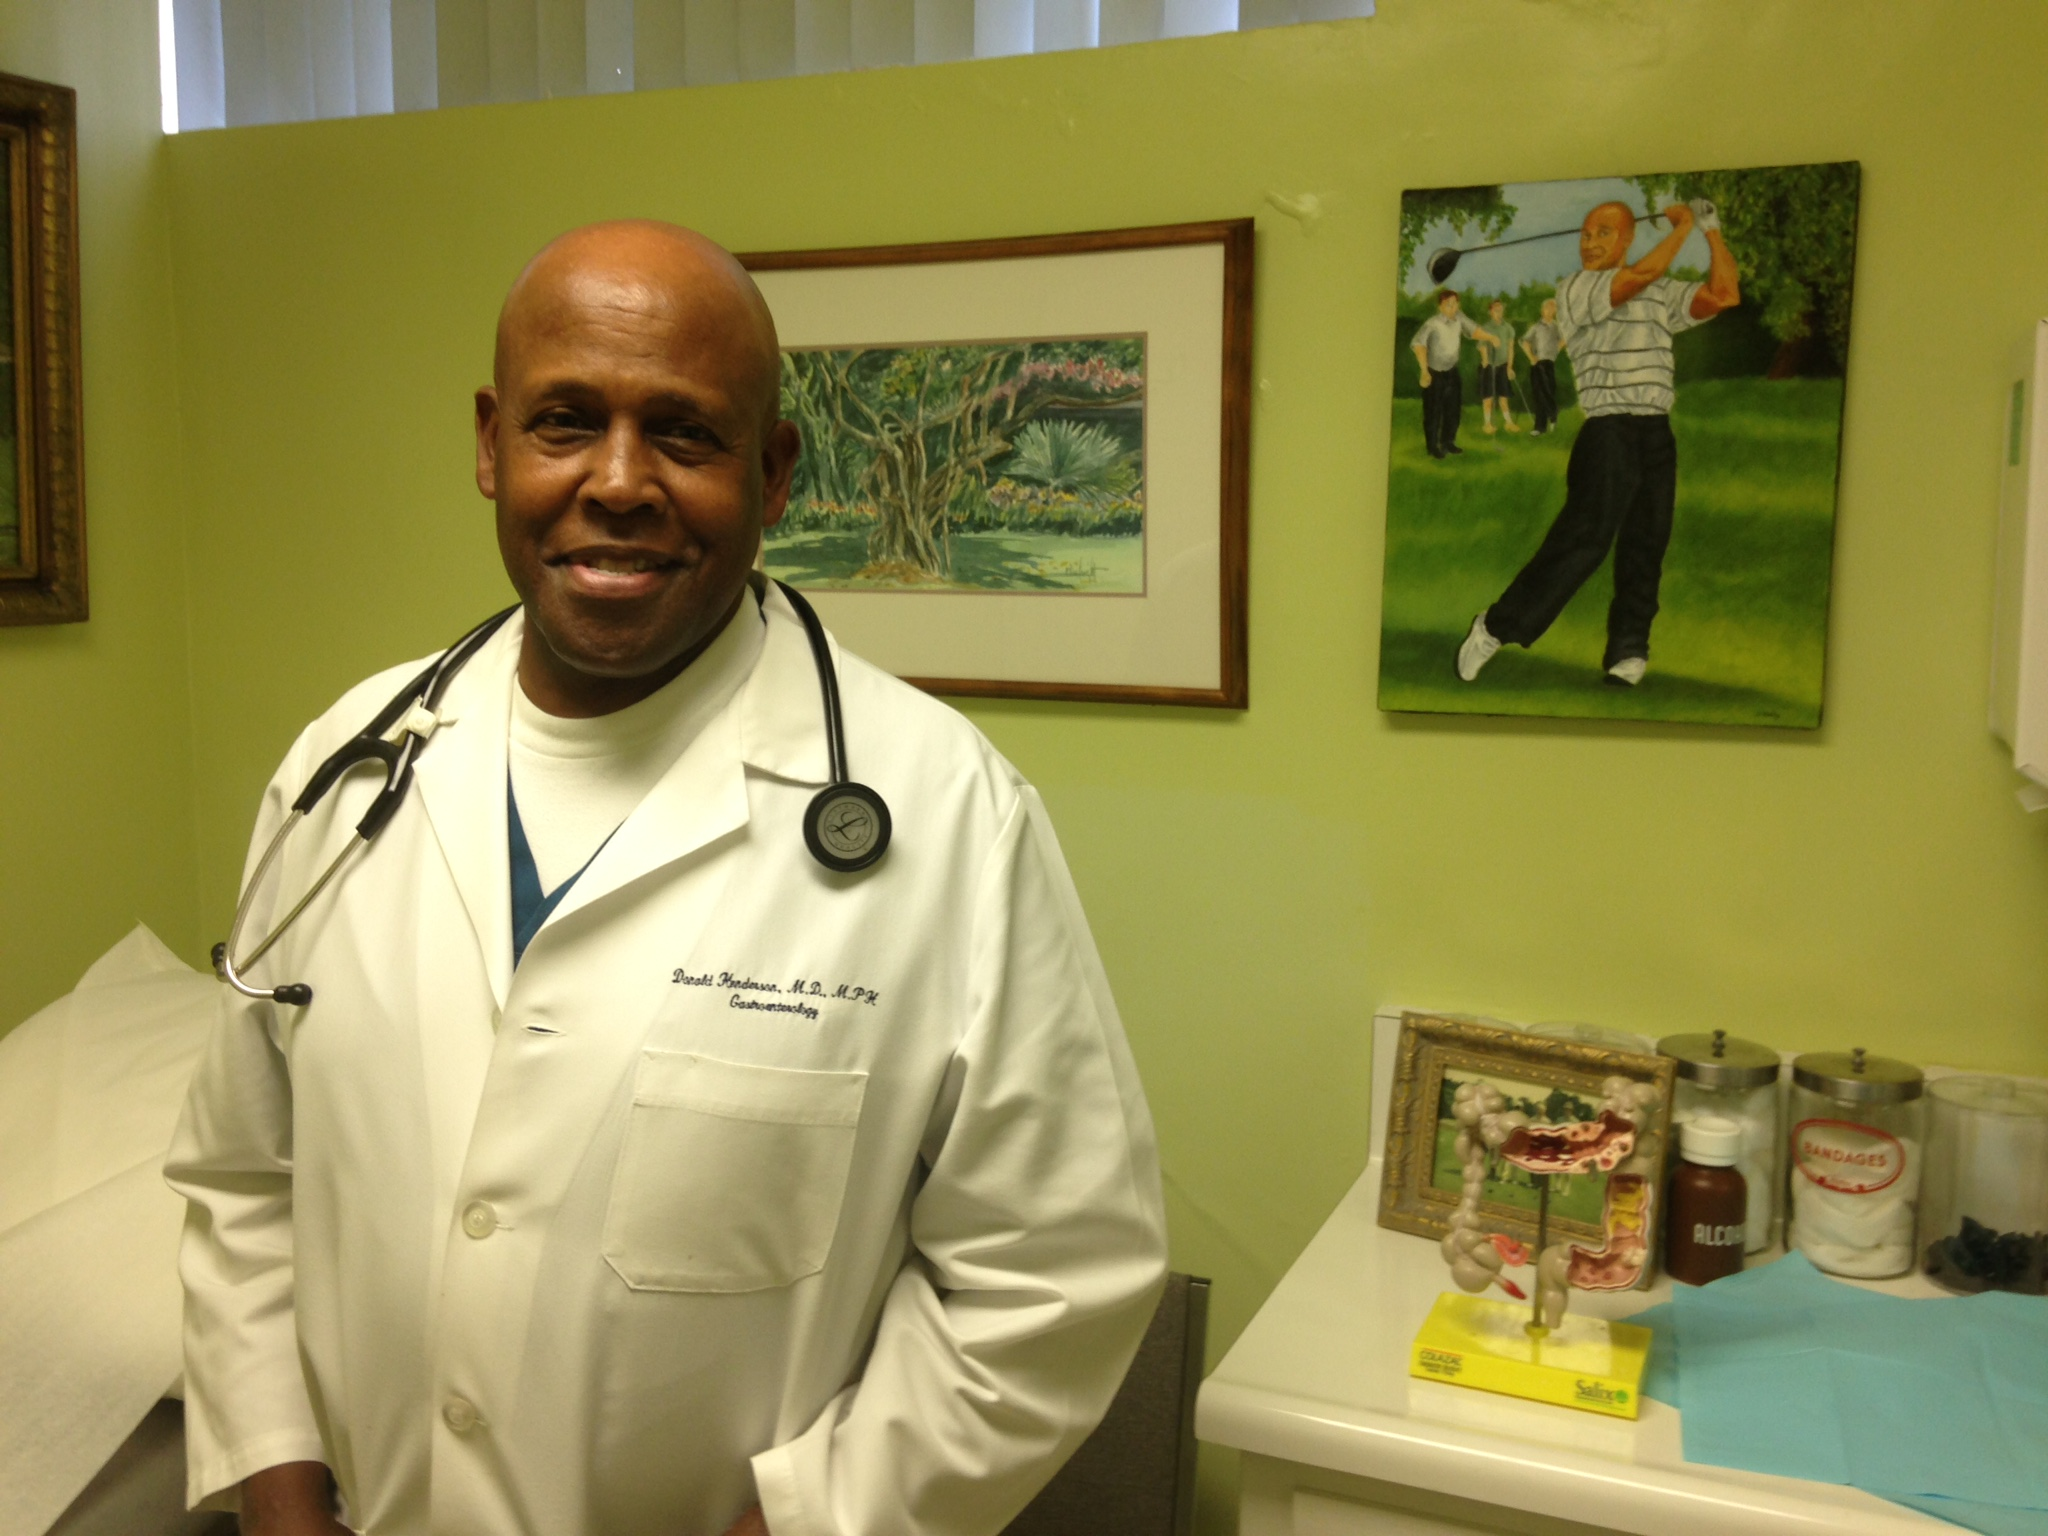 Dr. Donald Henderson, a gastroenterologist in his Inglewood office. Photo by Avishay Artsy